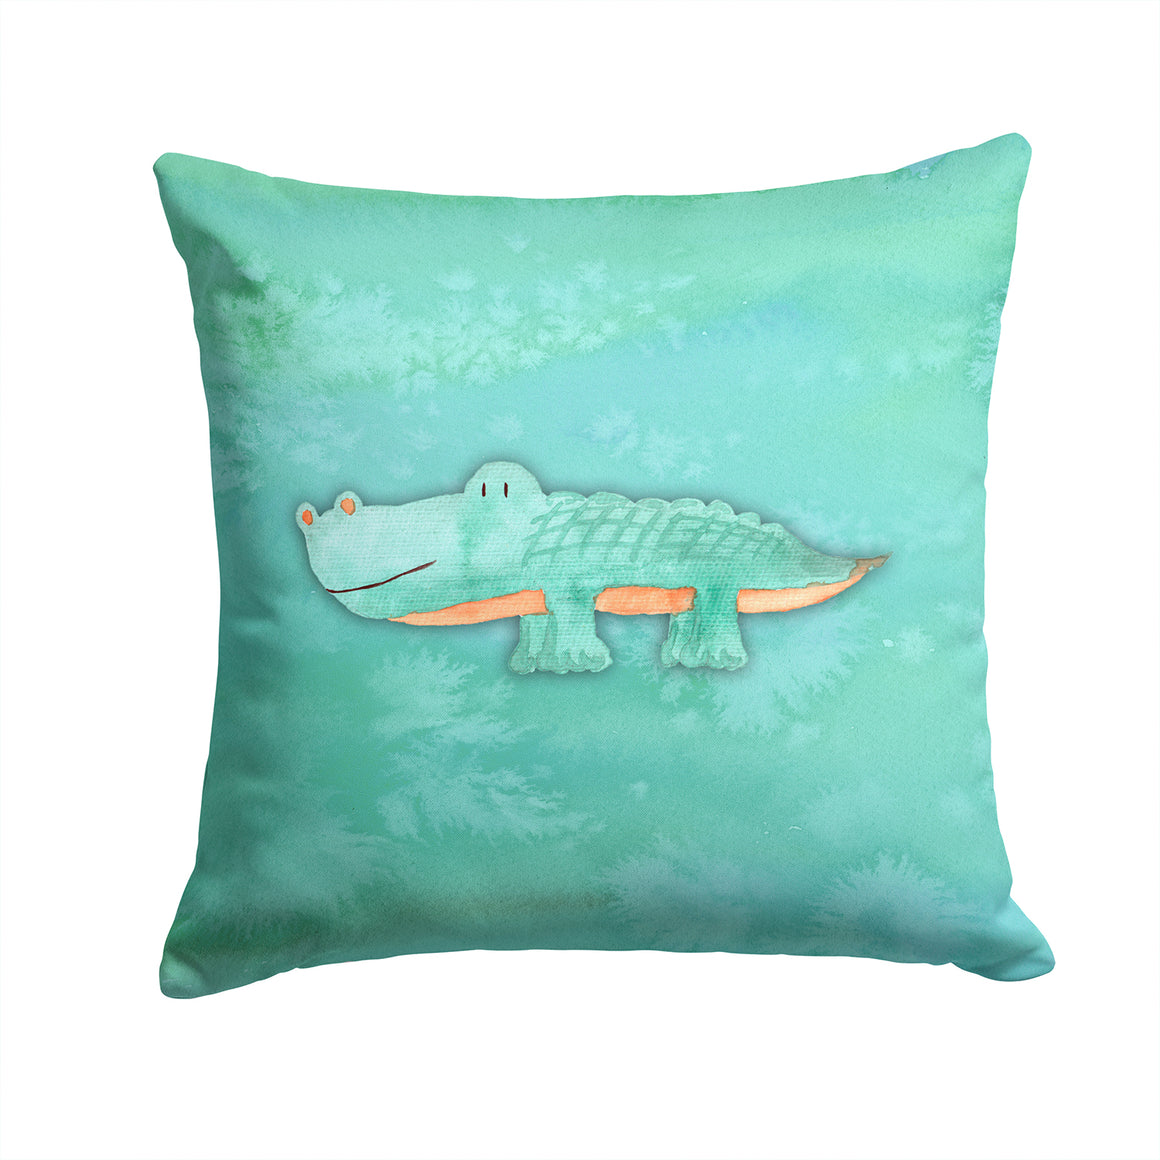 Buy this Alligator Watercolor Fabric Decorative Pillow BB7385PW1414